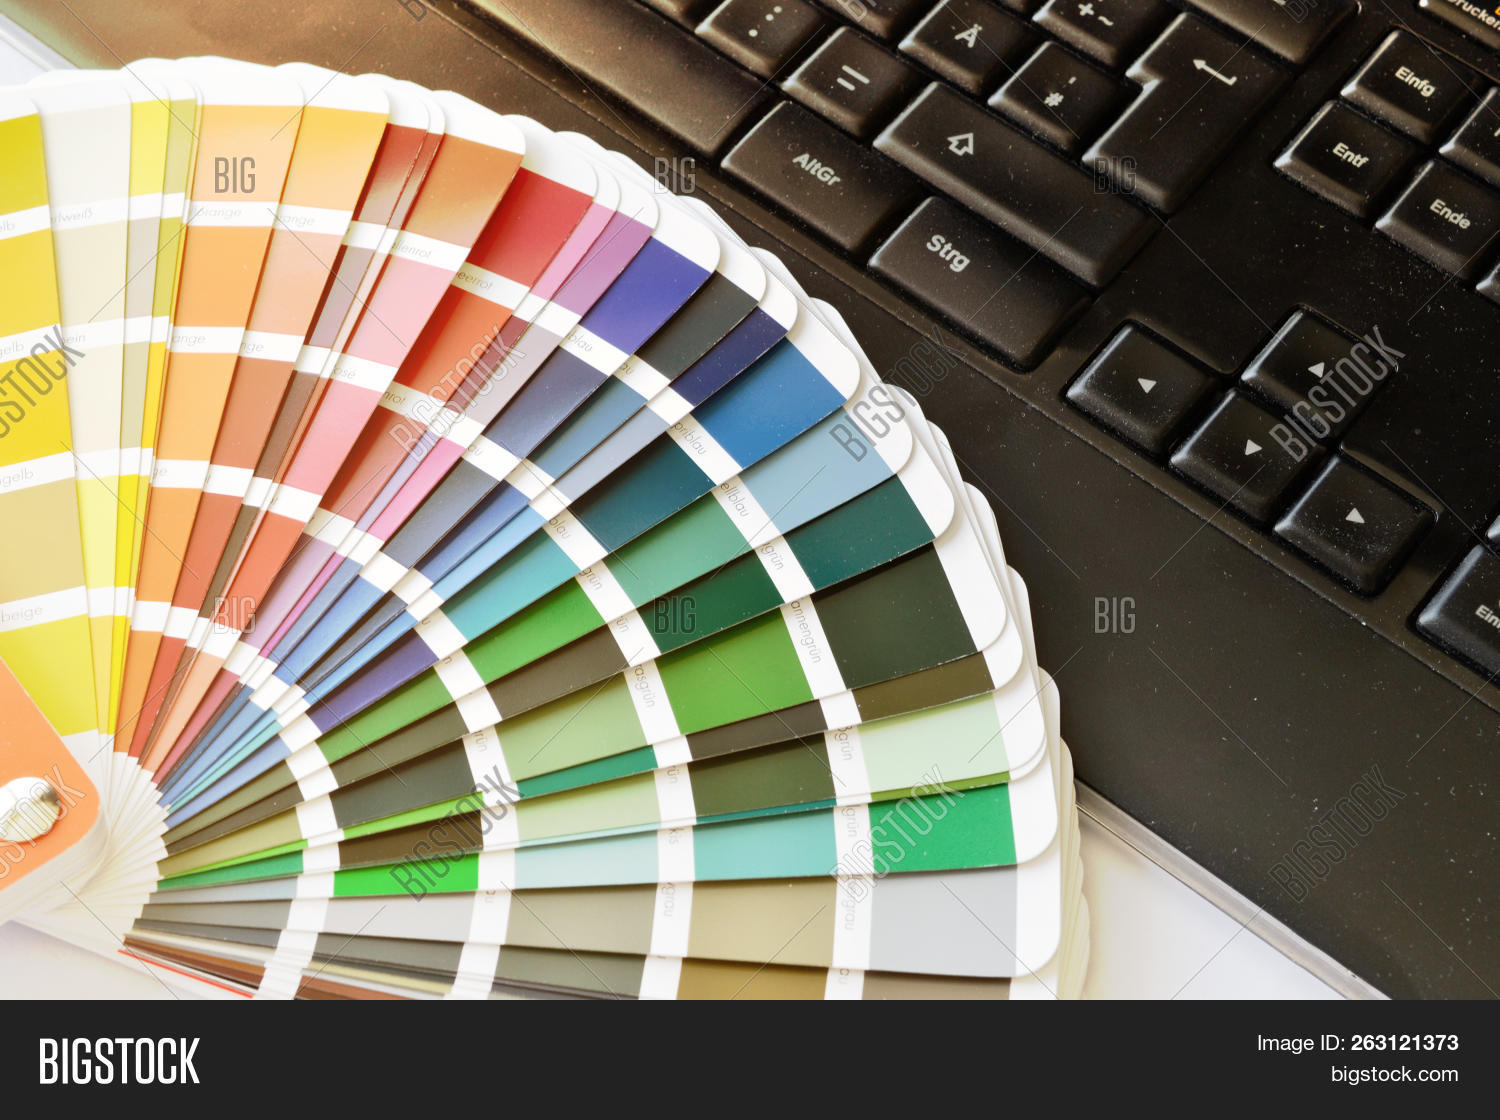 Ral Cmyk Ral Color Fan Cmyk On Image Photo Free Trial Bigstock